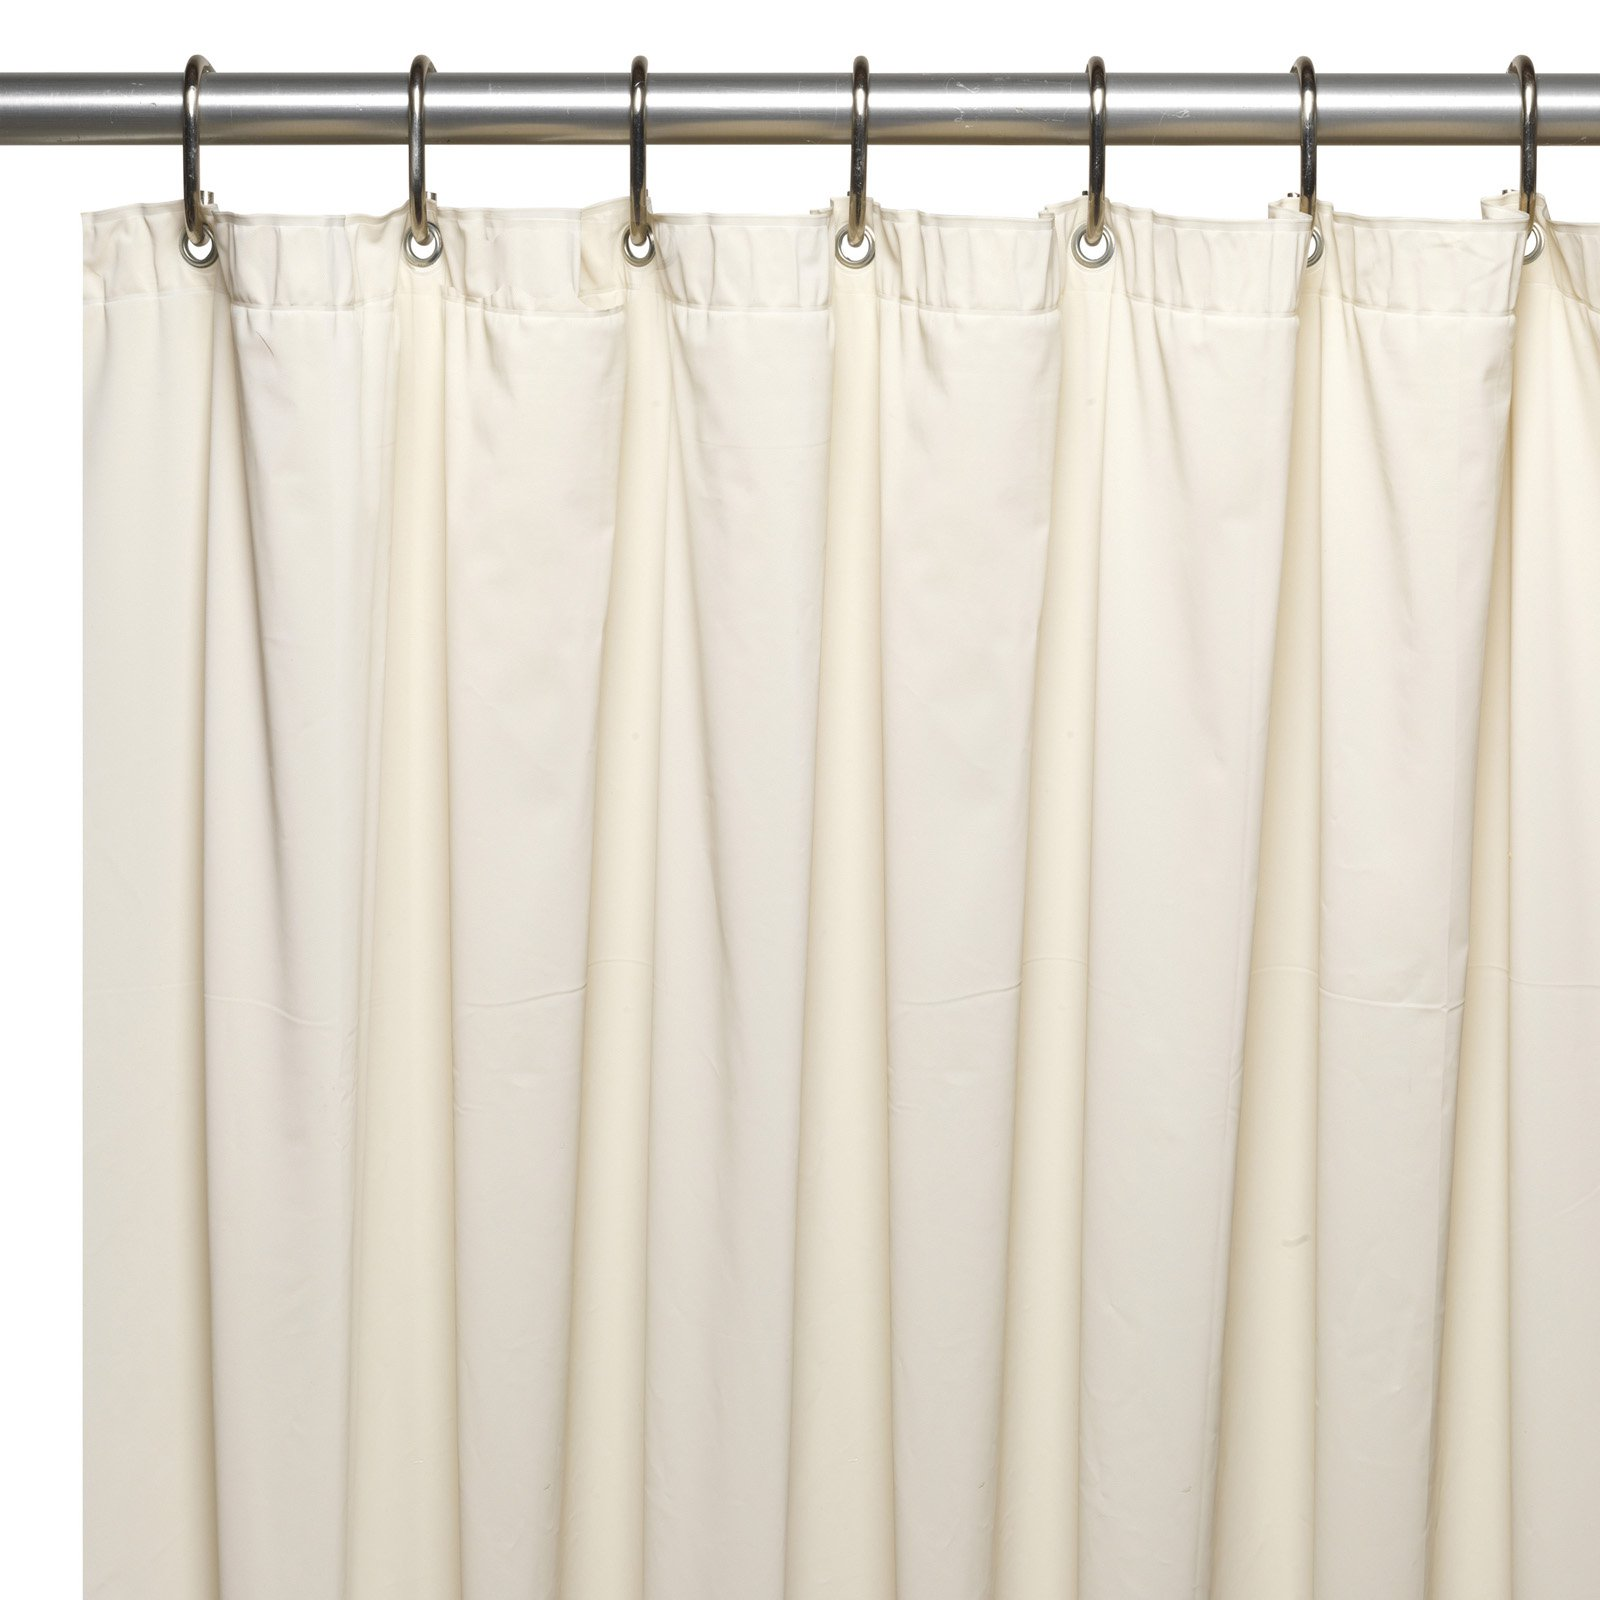 Extra Long 70 X 84 Mildew Resistant 10 Gauge Vinyl Shower Curtain Liner W Metal Grommets And Reinforced Mesh Header In Super Clear